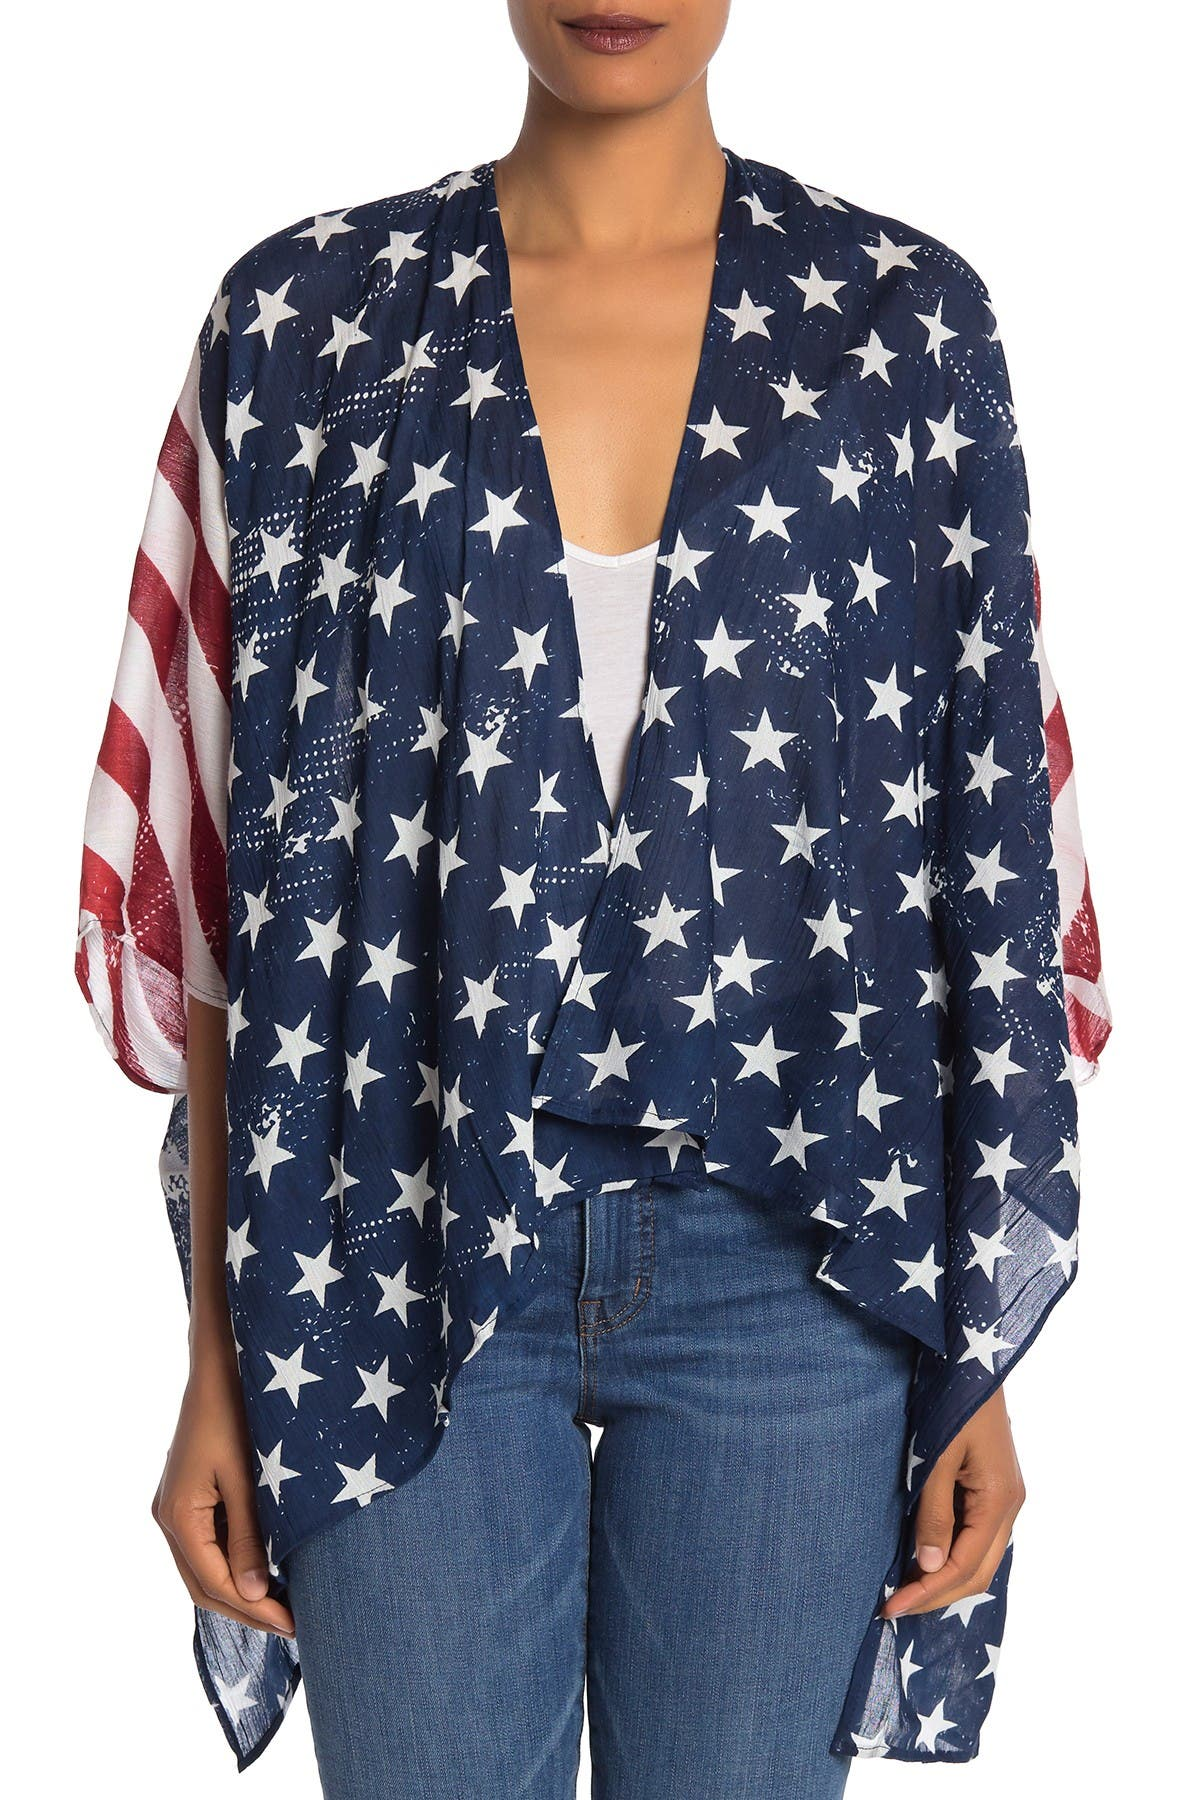 Accessory Street American Wonder Cover Up In Open Miscellaneous13